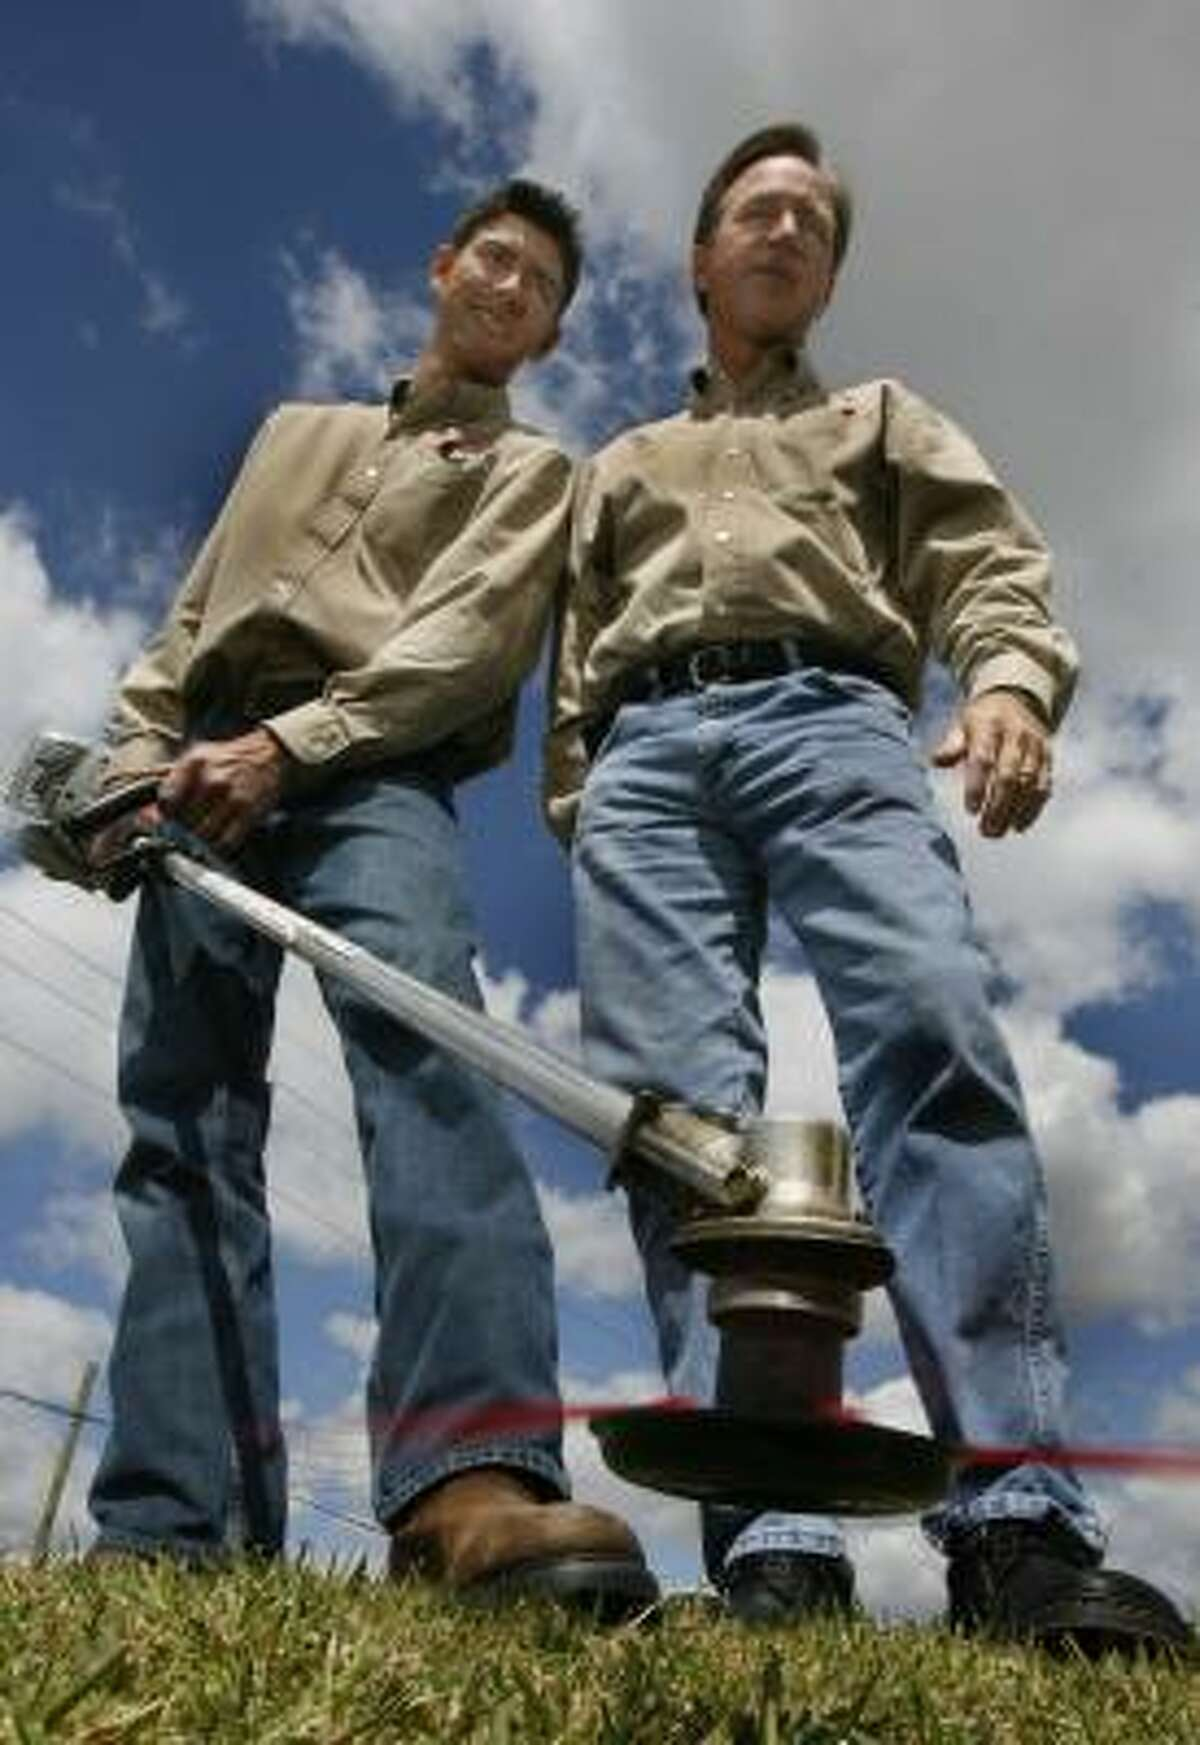 Mike and Dave Watts are marketing their Pivotrim trimmer head replacement for most gasoline-powered weed trimmers.